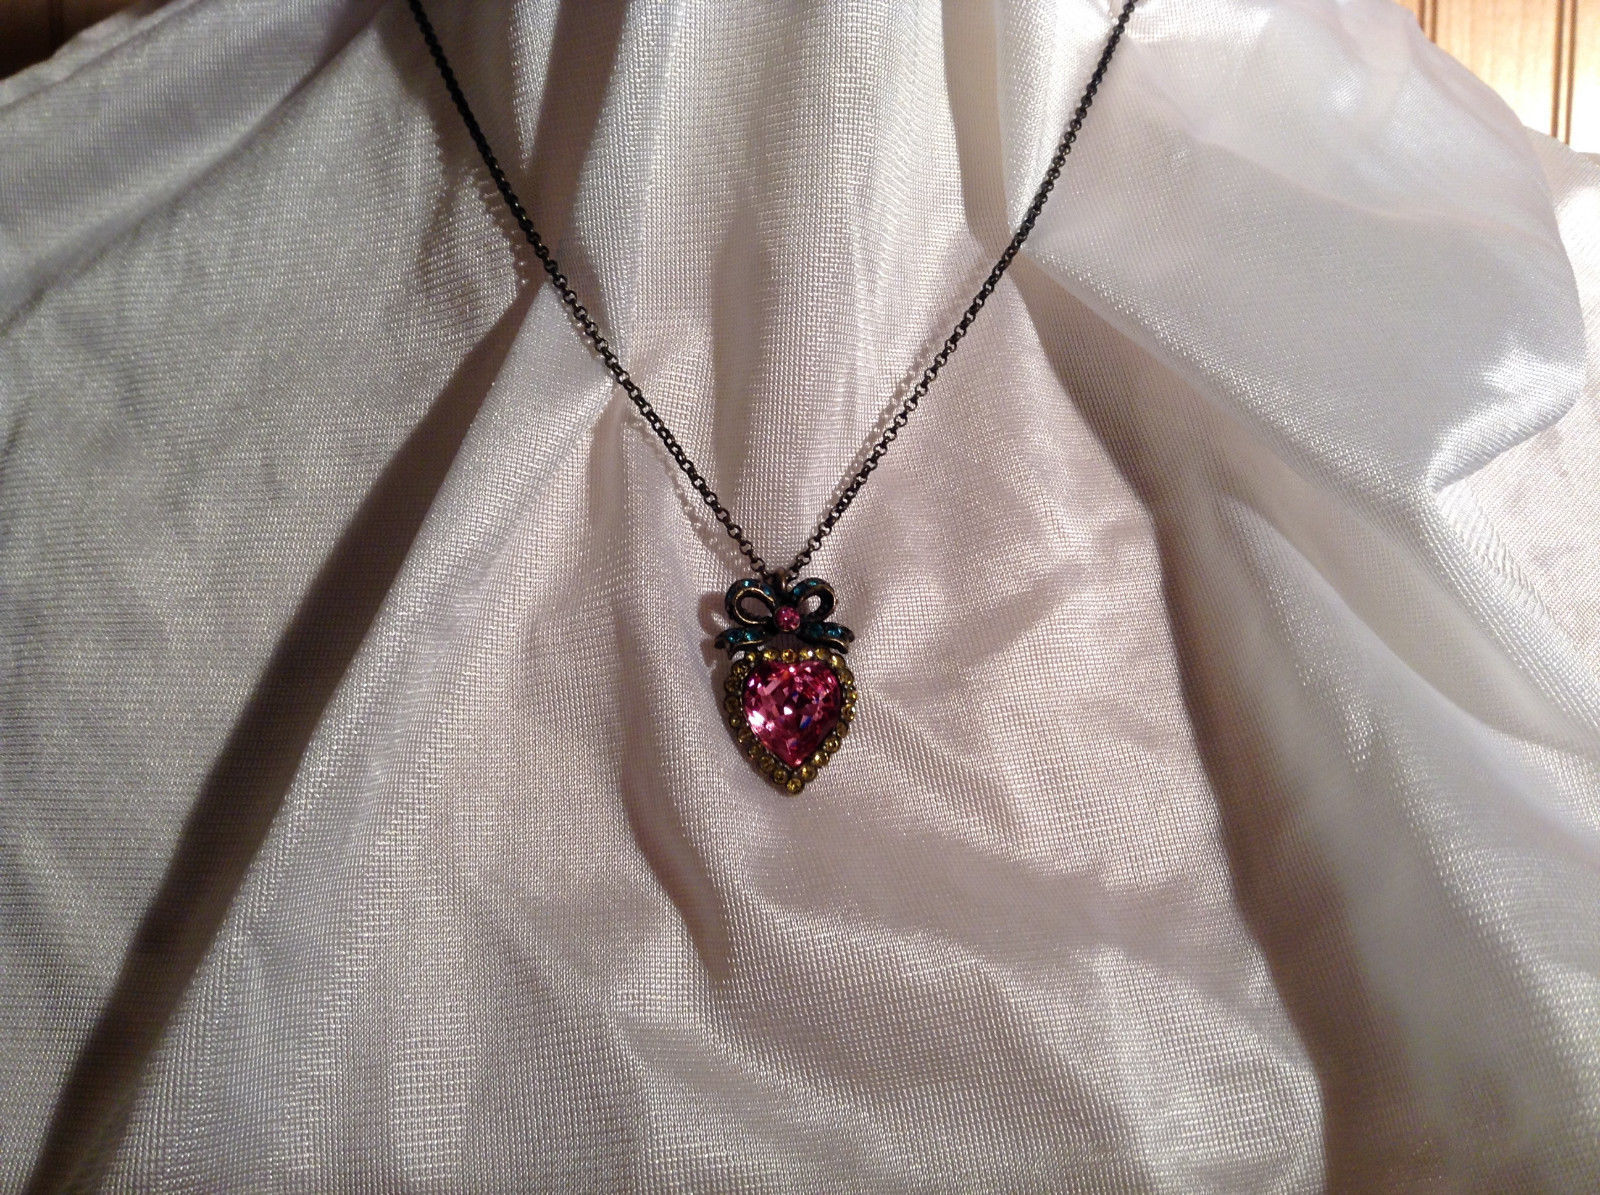 Pink Heart with Bow on Top Colorful Gold Vintage Pendant Necklace